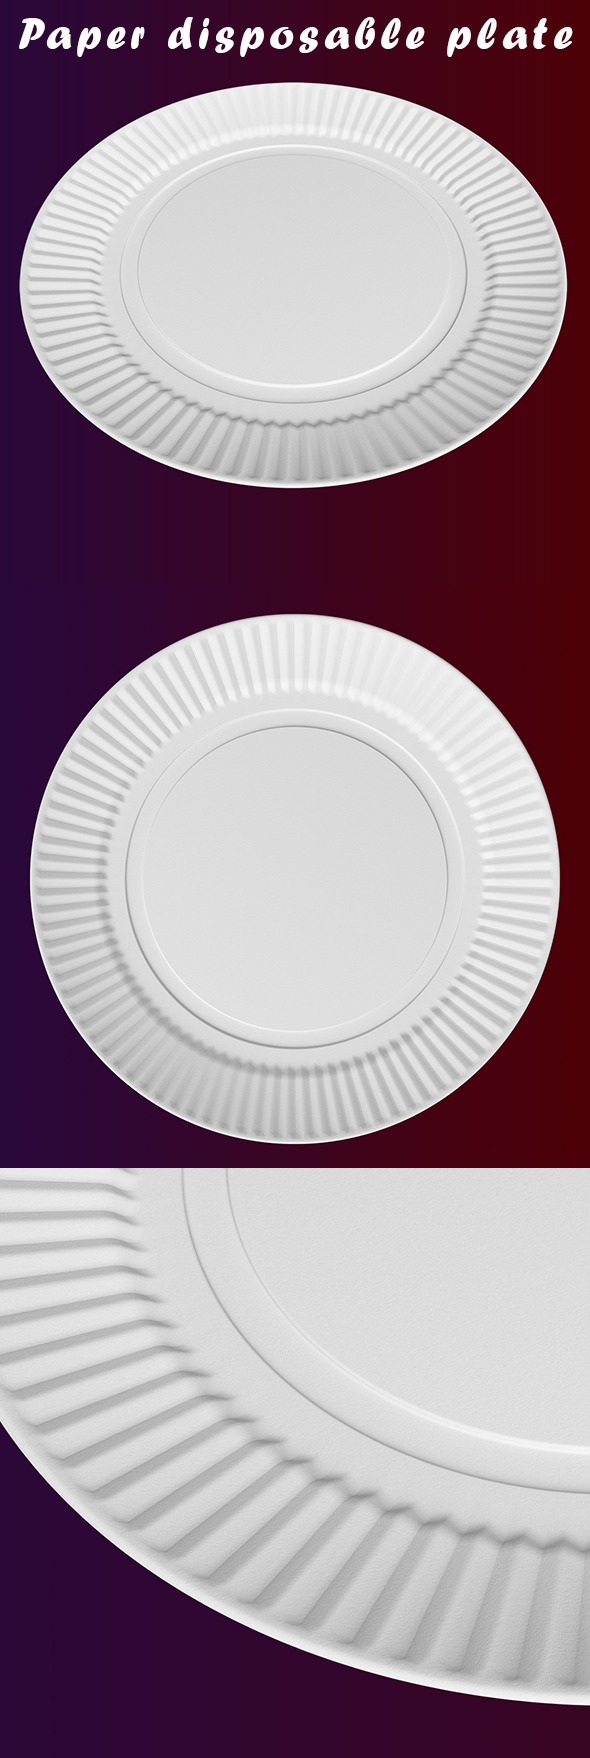 3DOcean Paper disposable plate 10015556